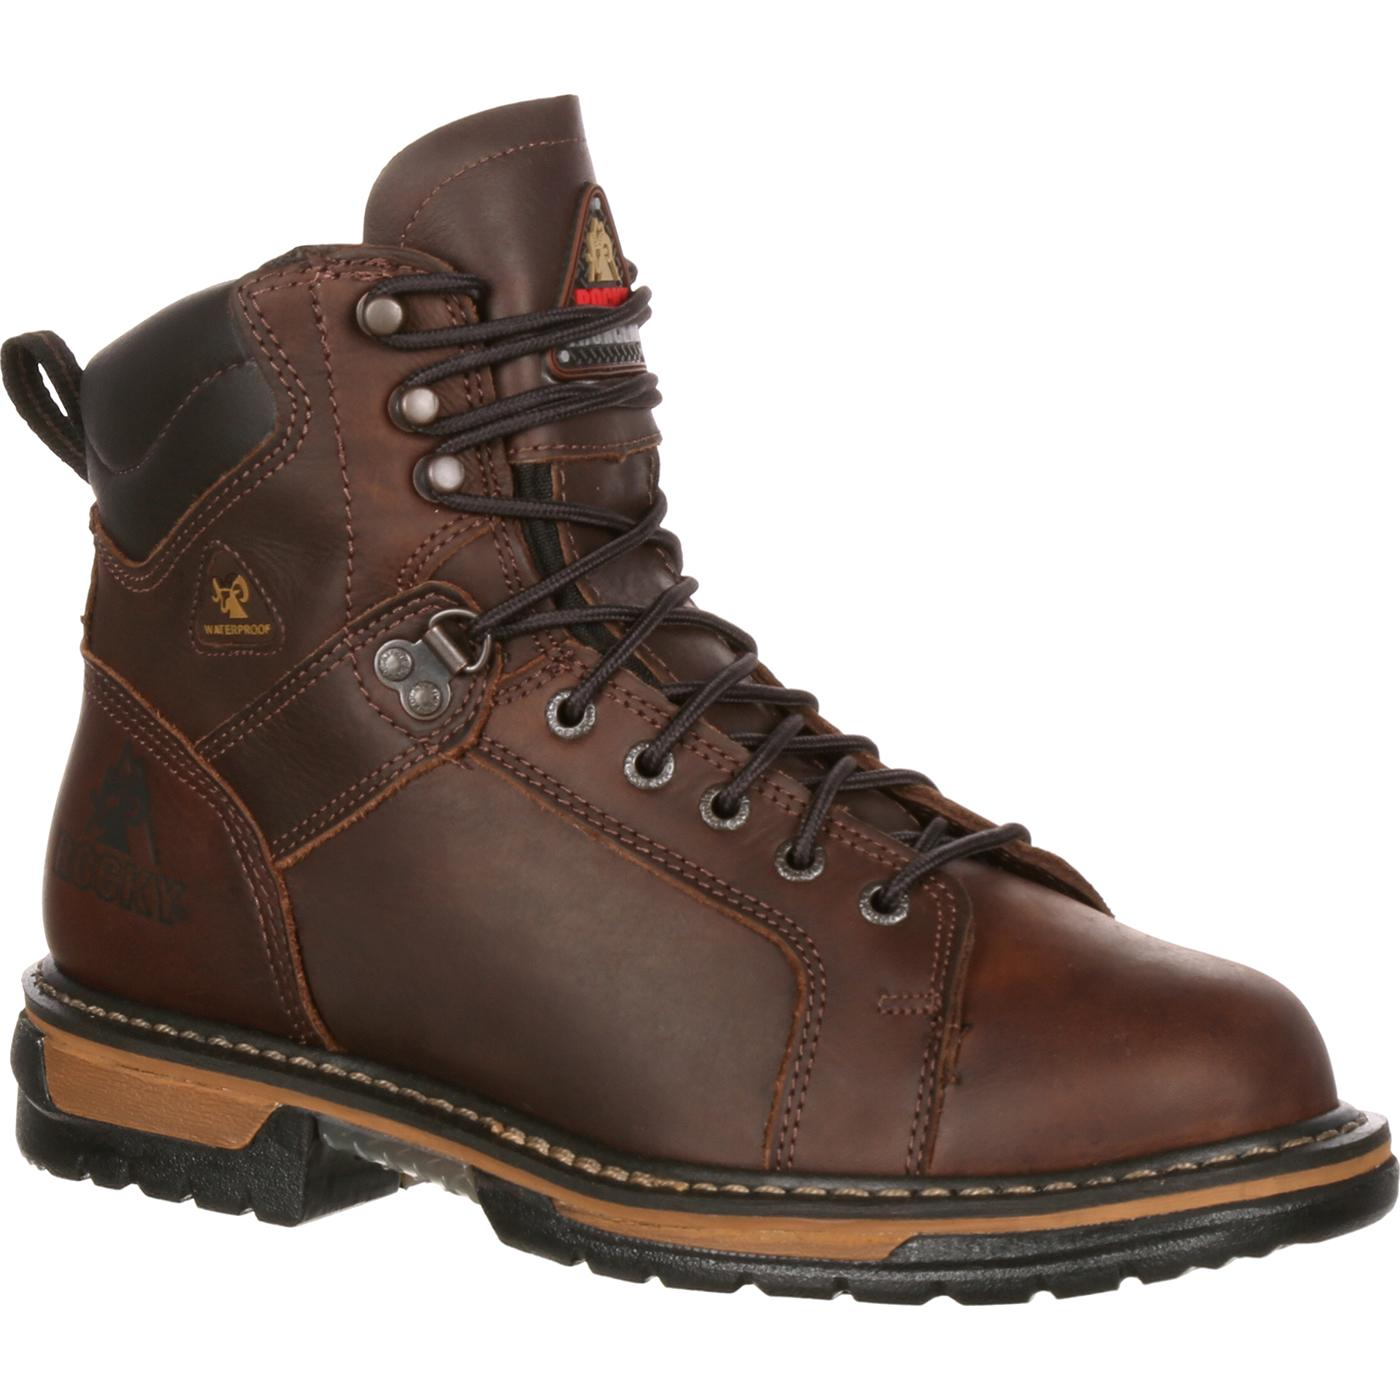 Waterproof Lace To Toe Work Boots Rocky Ironclad 5703